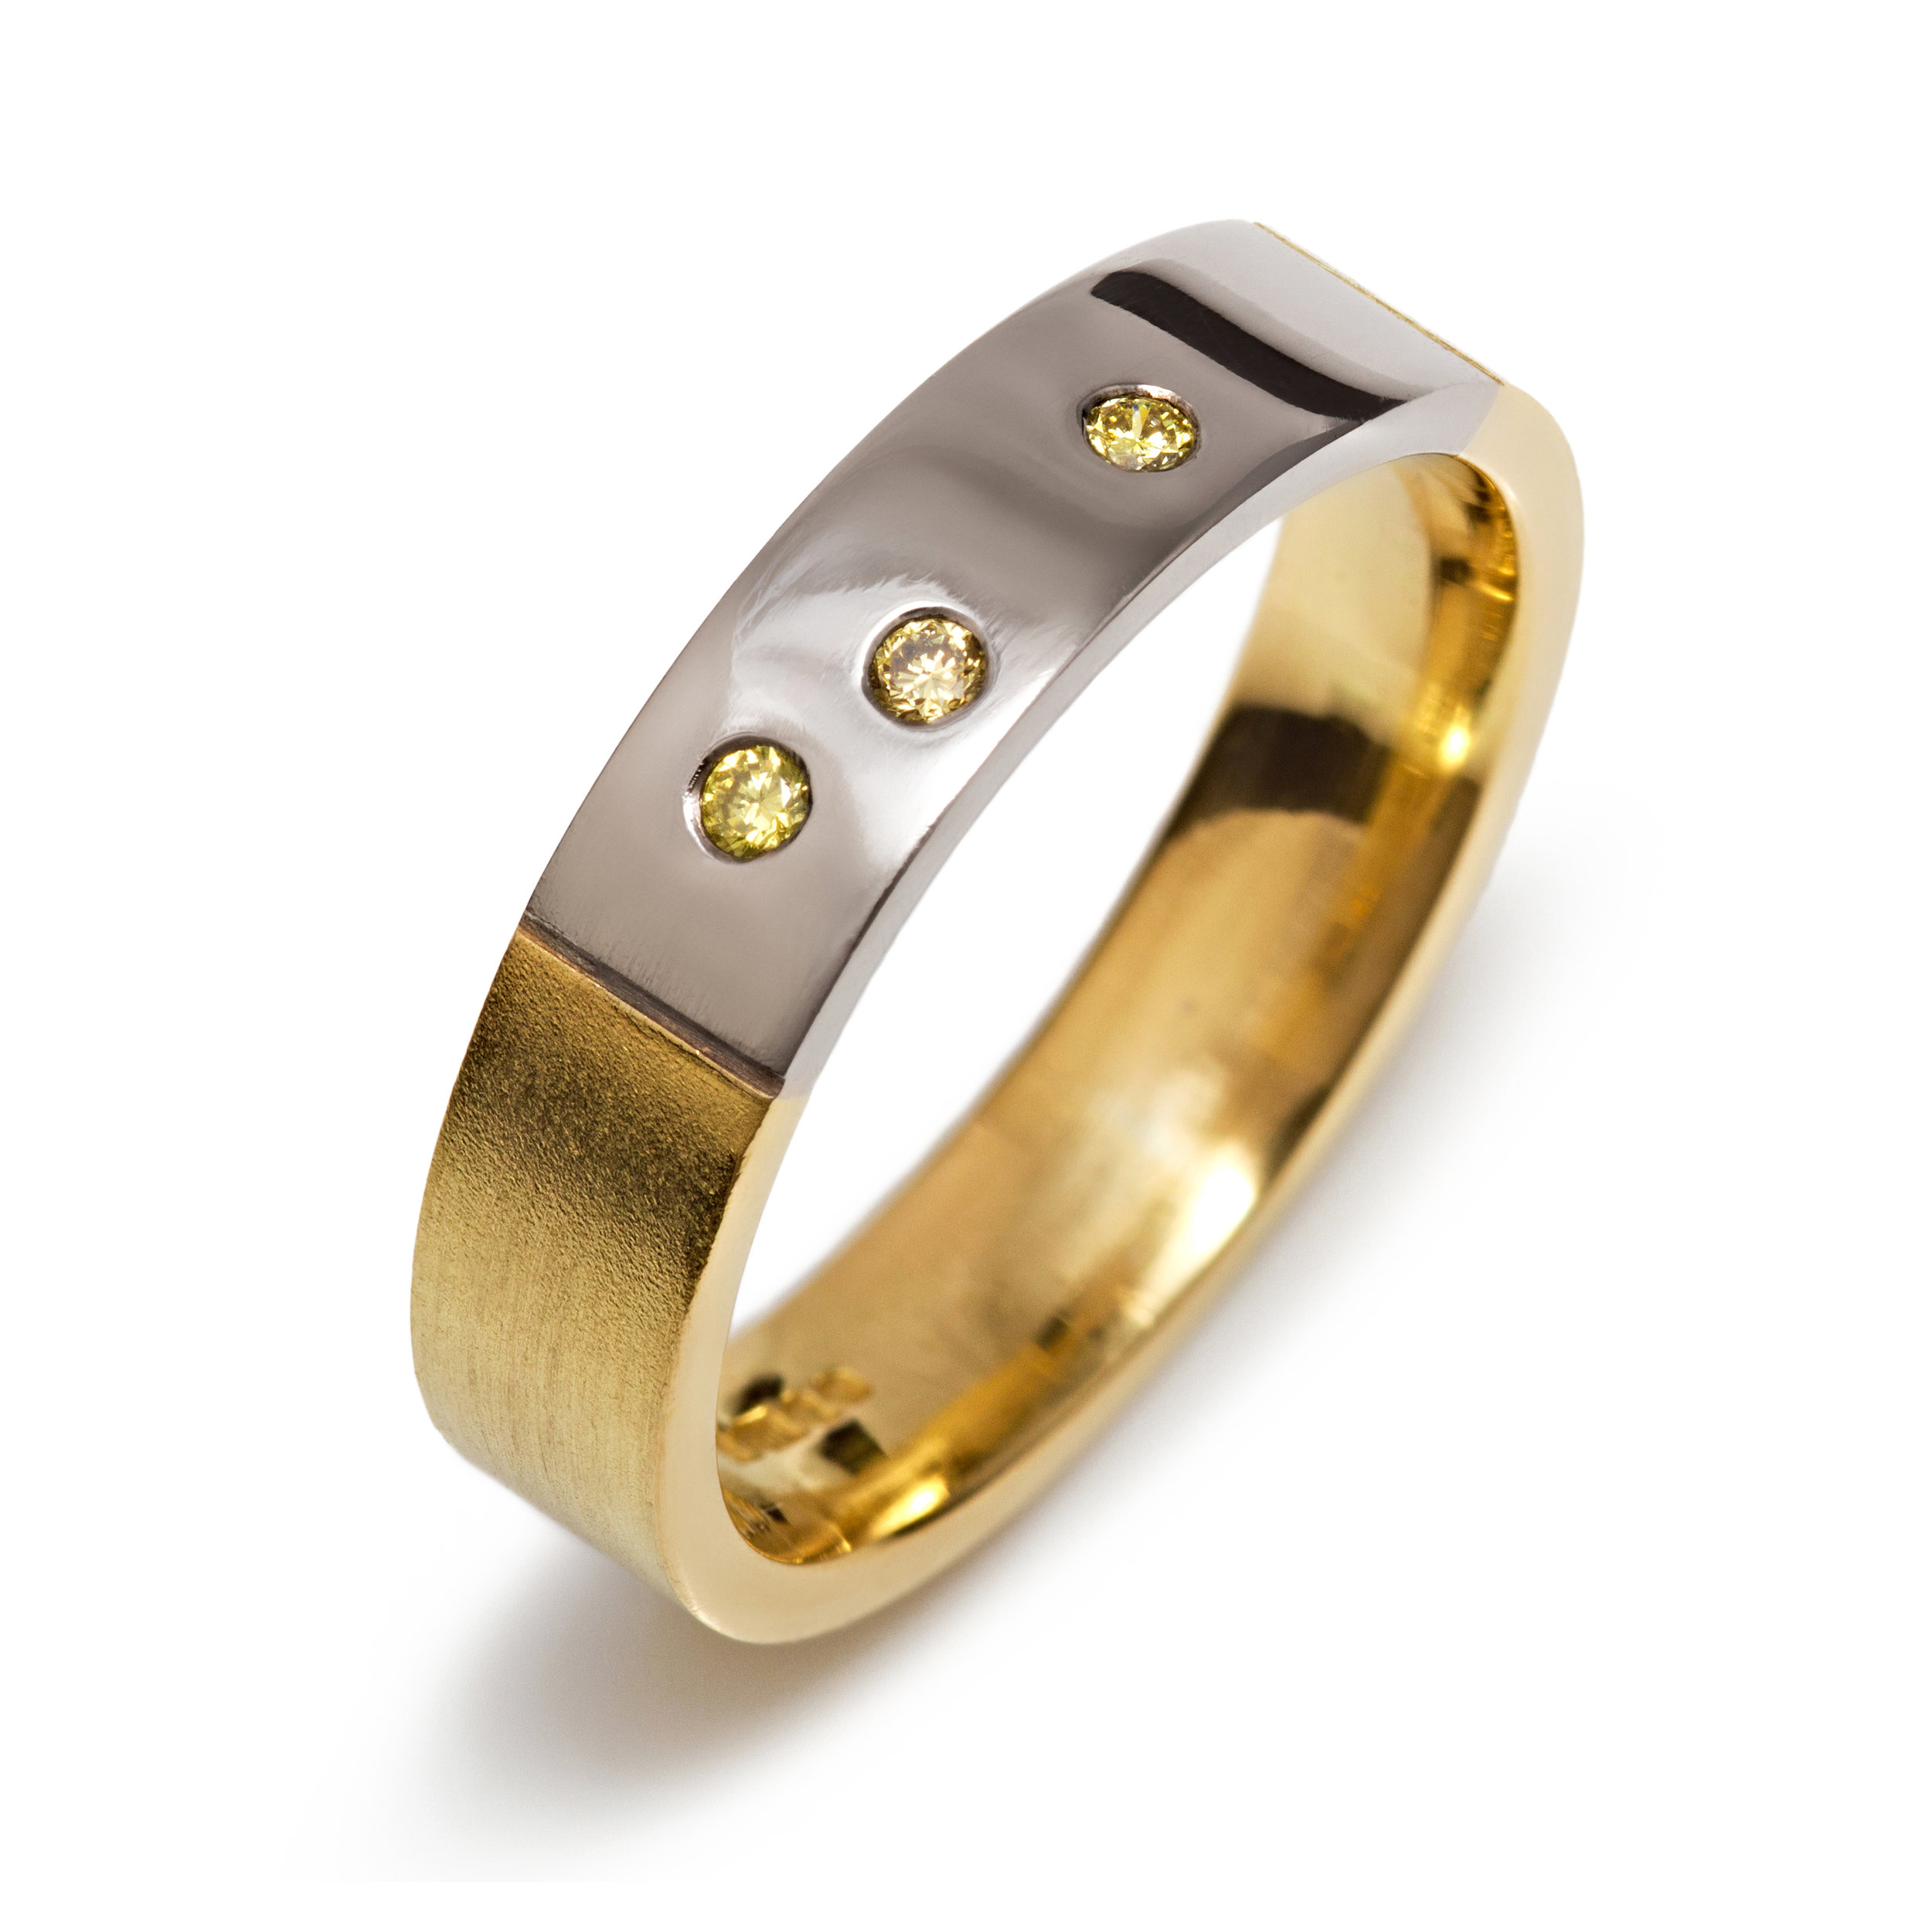 18ct yellow and white gold ring set with three natural yellow round brilliant cut diamonds - £1,195